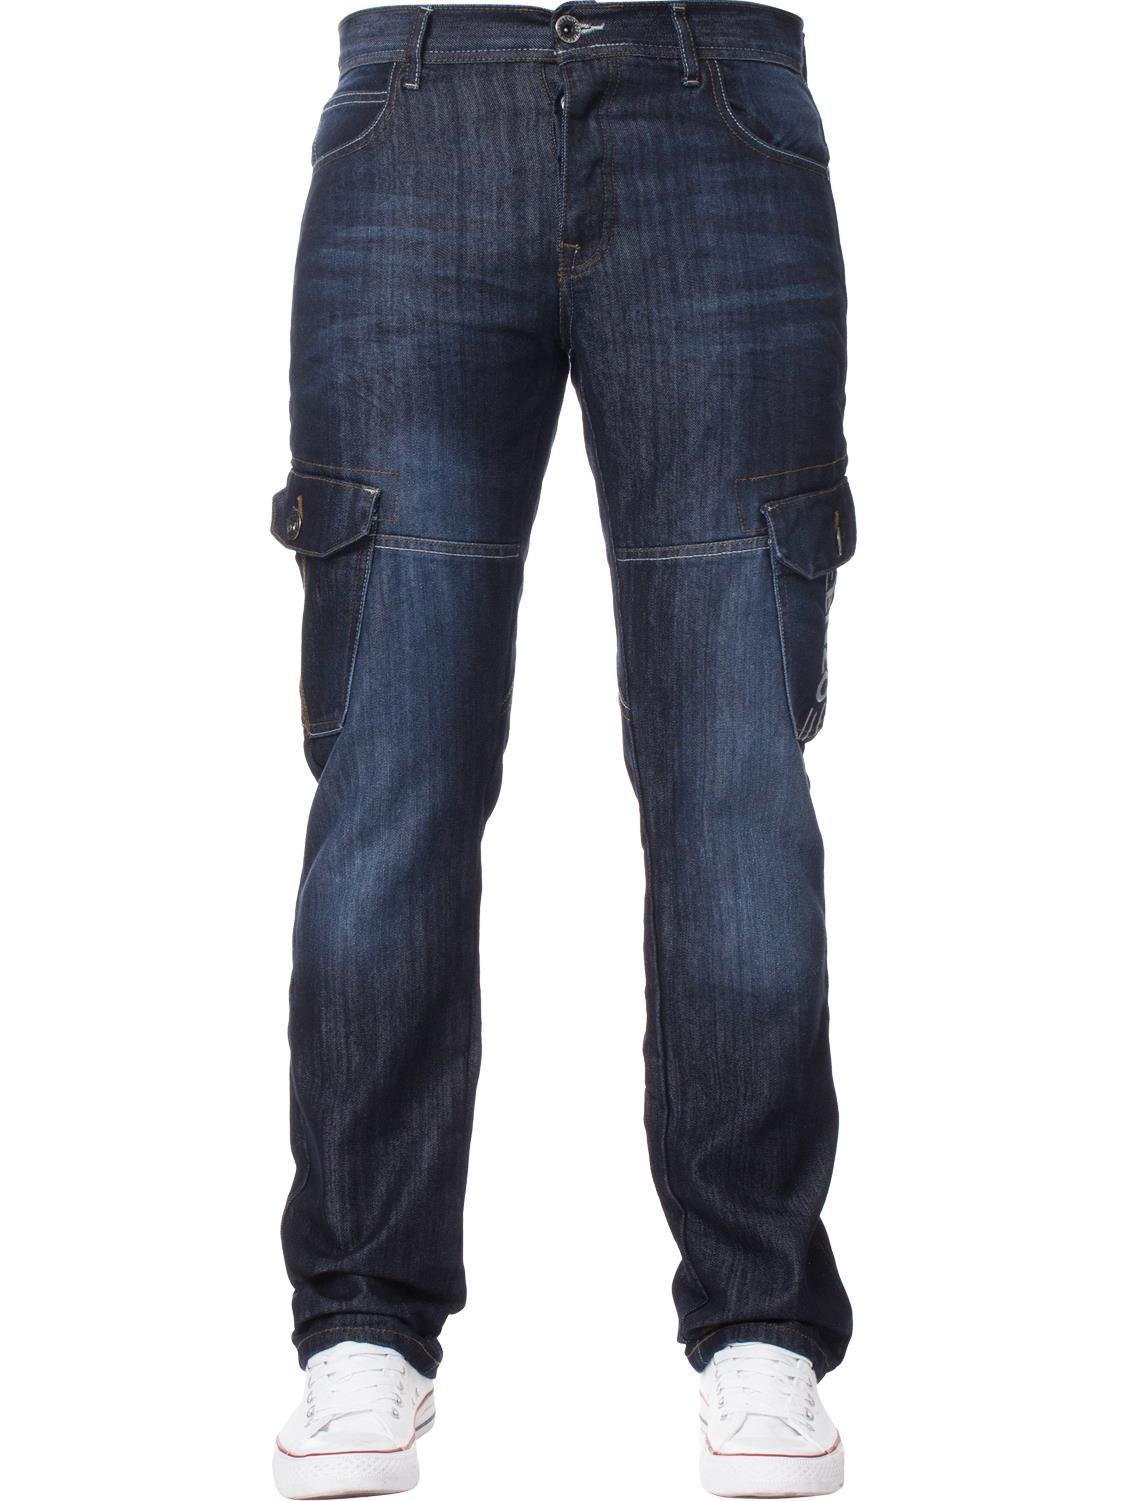 Enzo-Mens-Jeans-Big-Tall-Leg-King-Size-Denim-Pants-Chino-Trousers-Waist-44-034-60-034 miniature 80